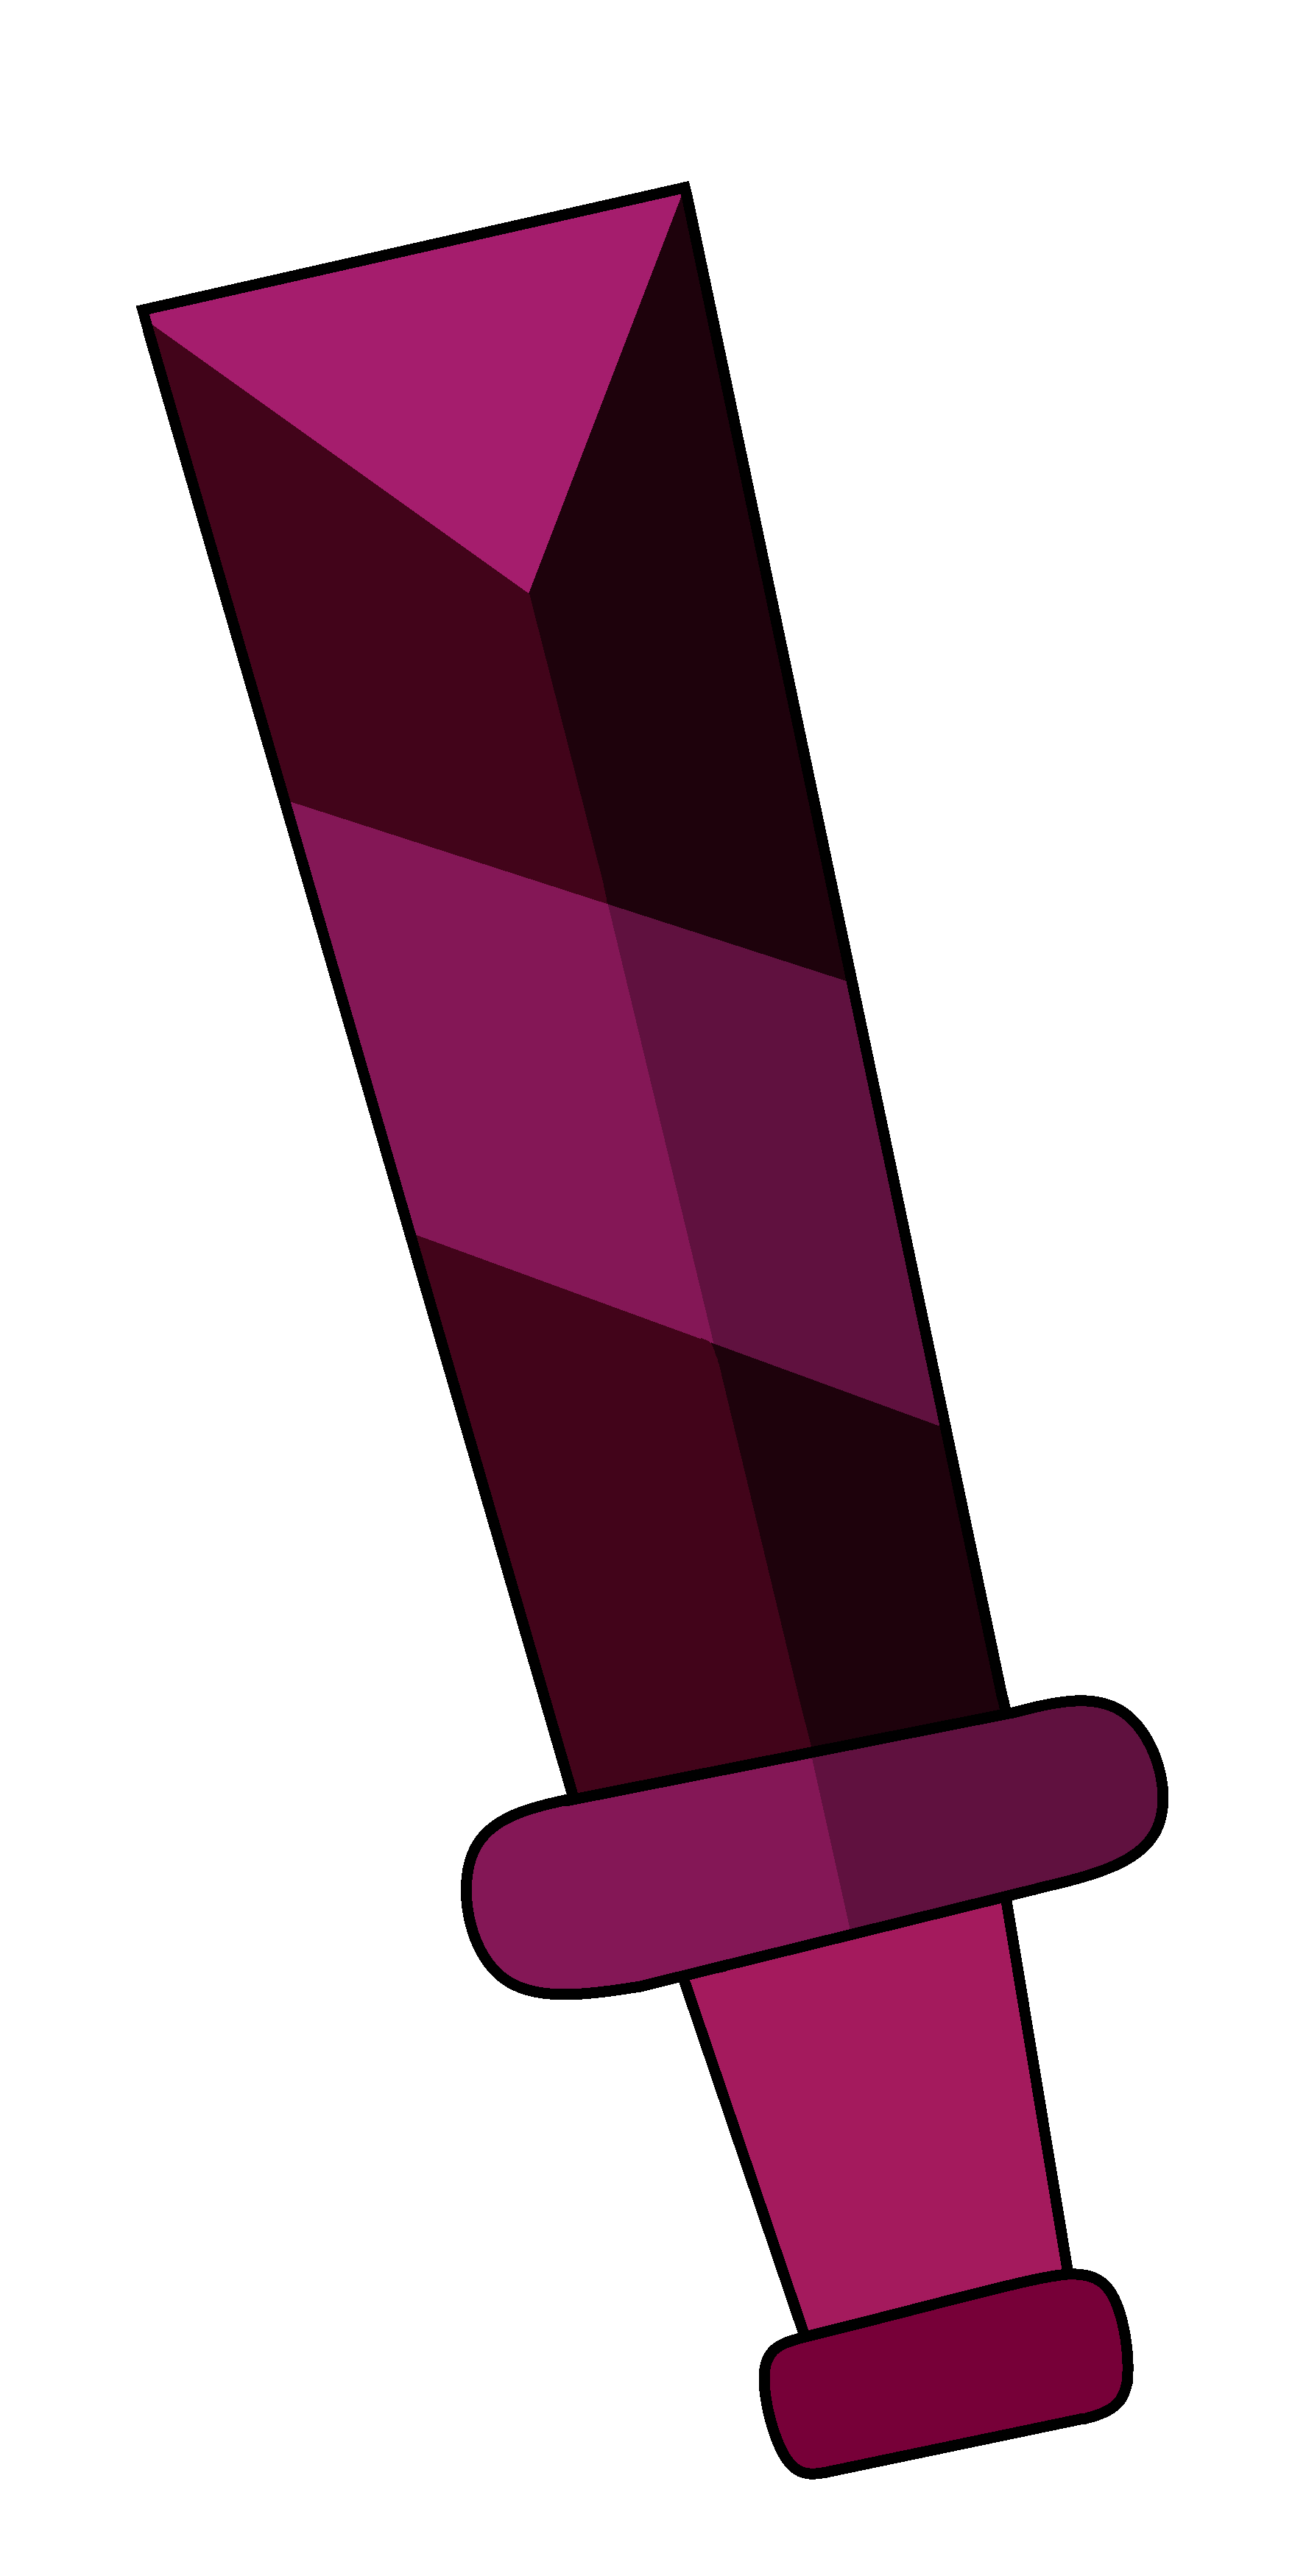 Ruby Eyeball Chisel by Cocoa